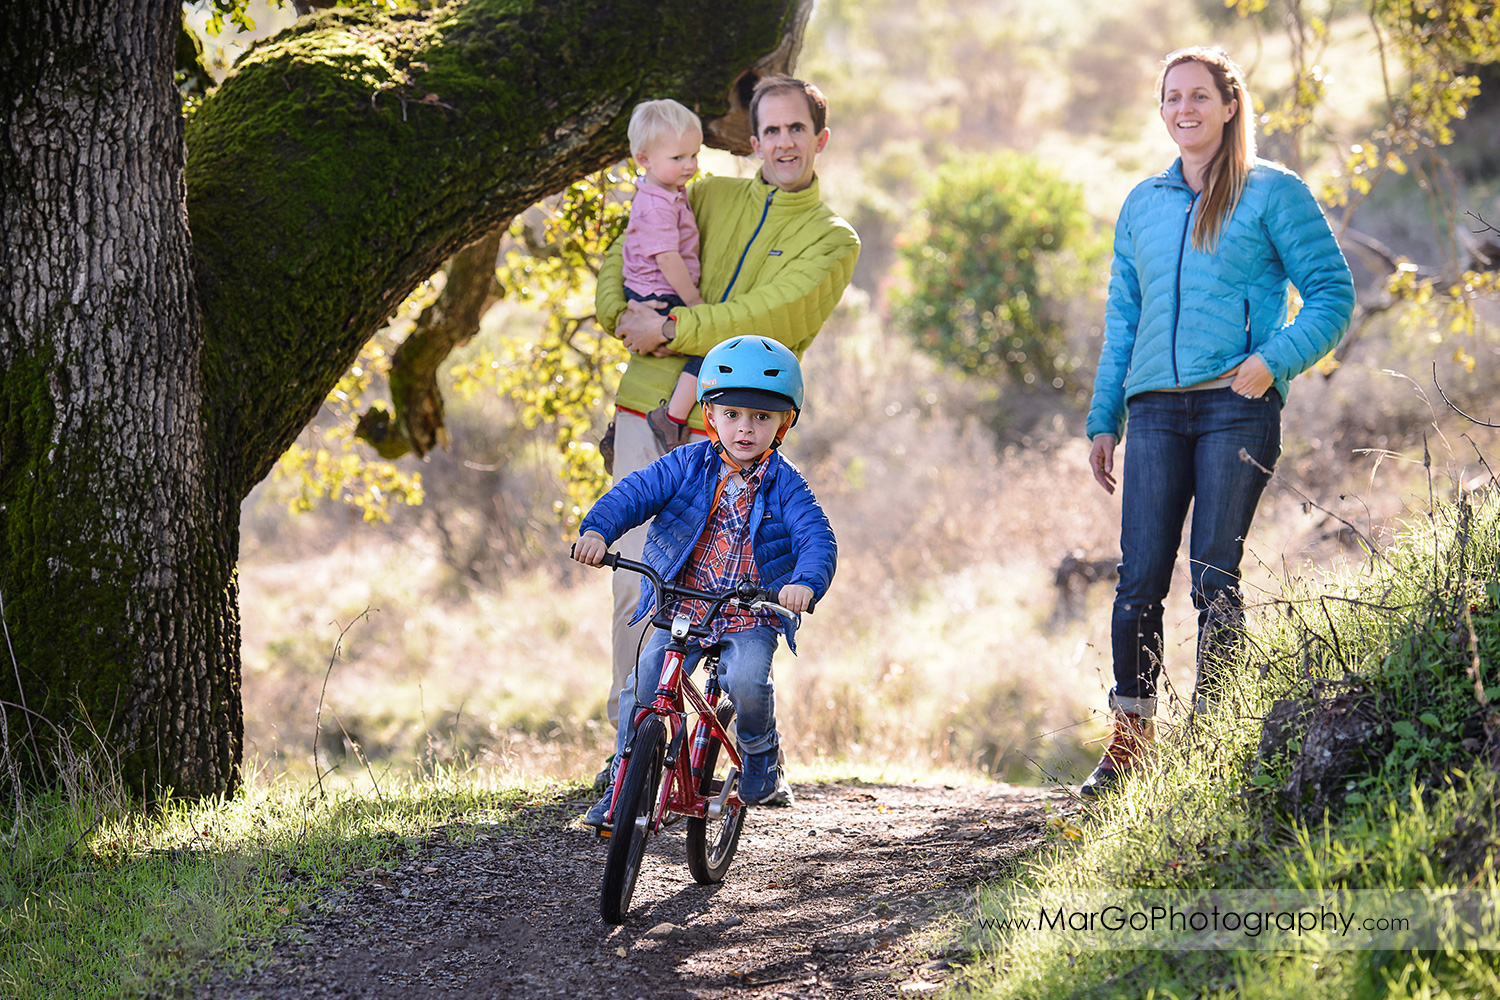 little boy in blue jacket riding a bike with parents in the background at San Raeael China Camp SP